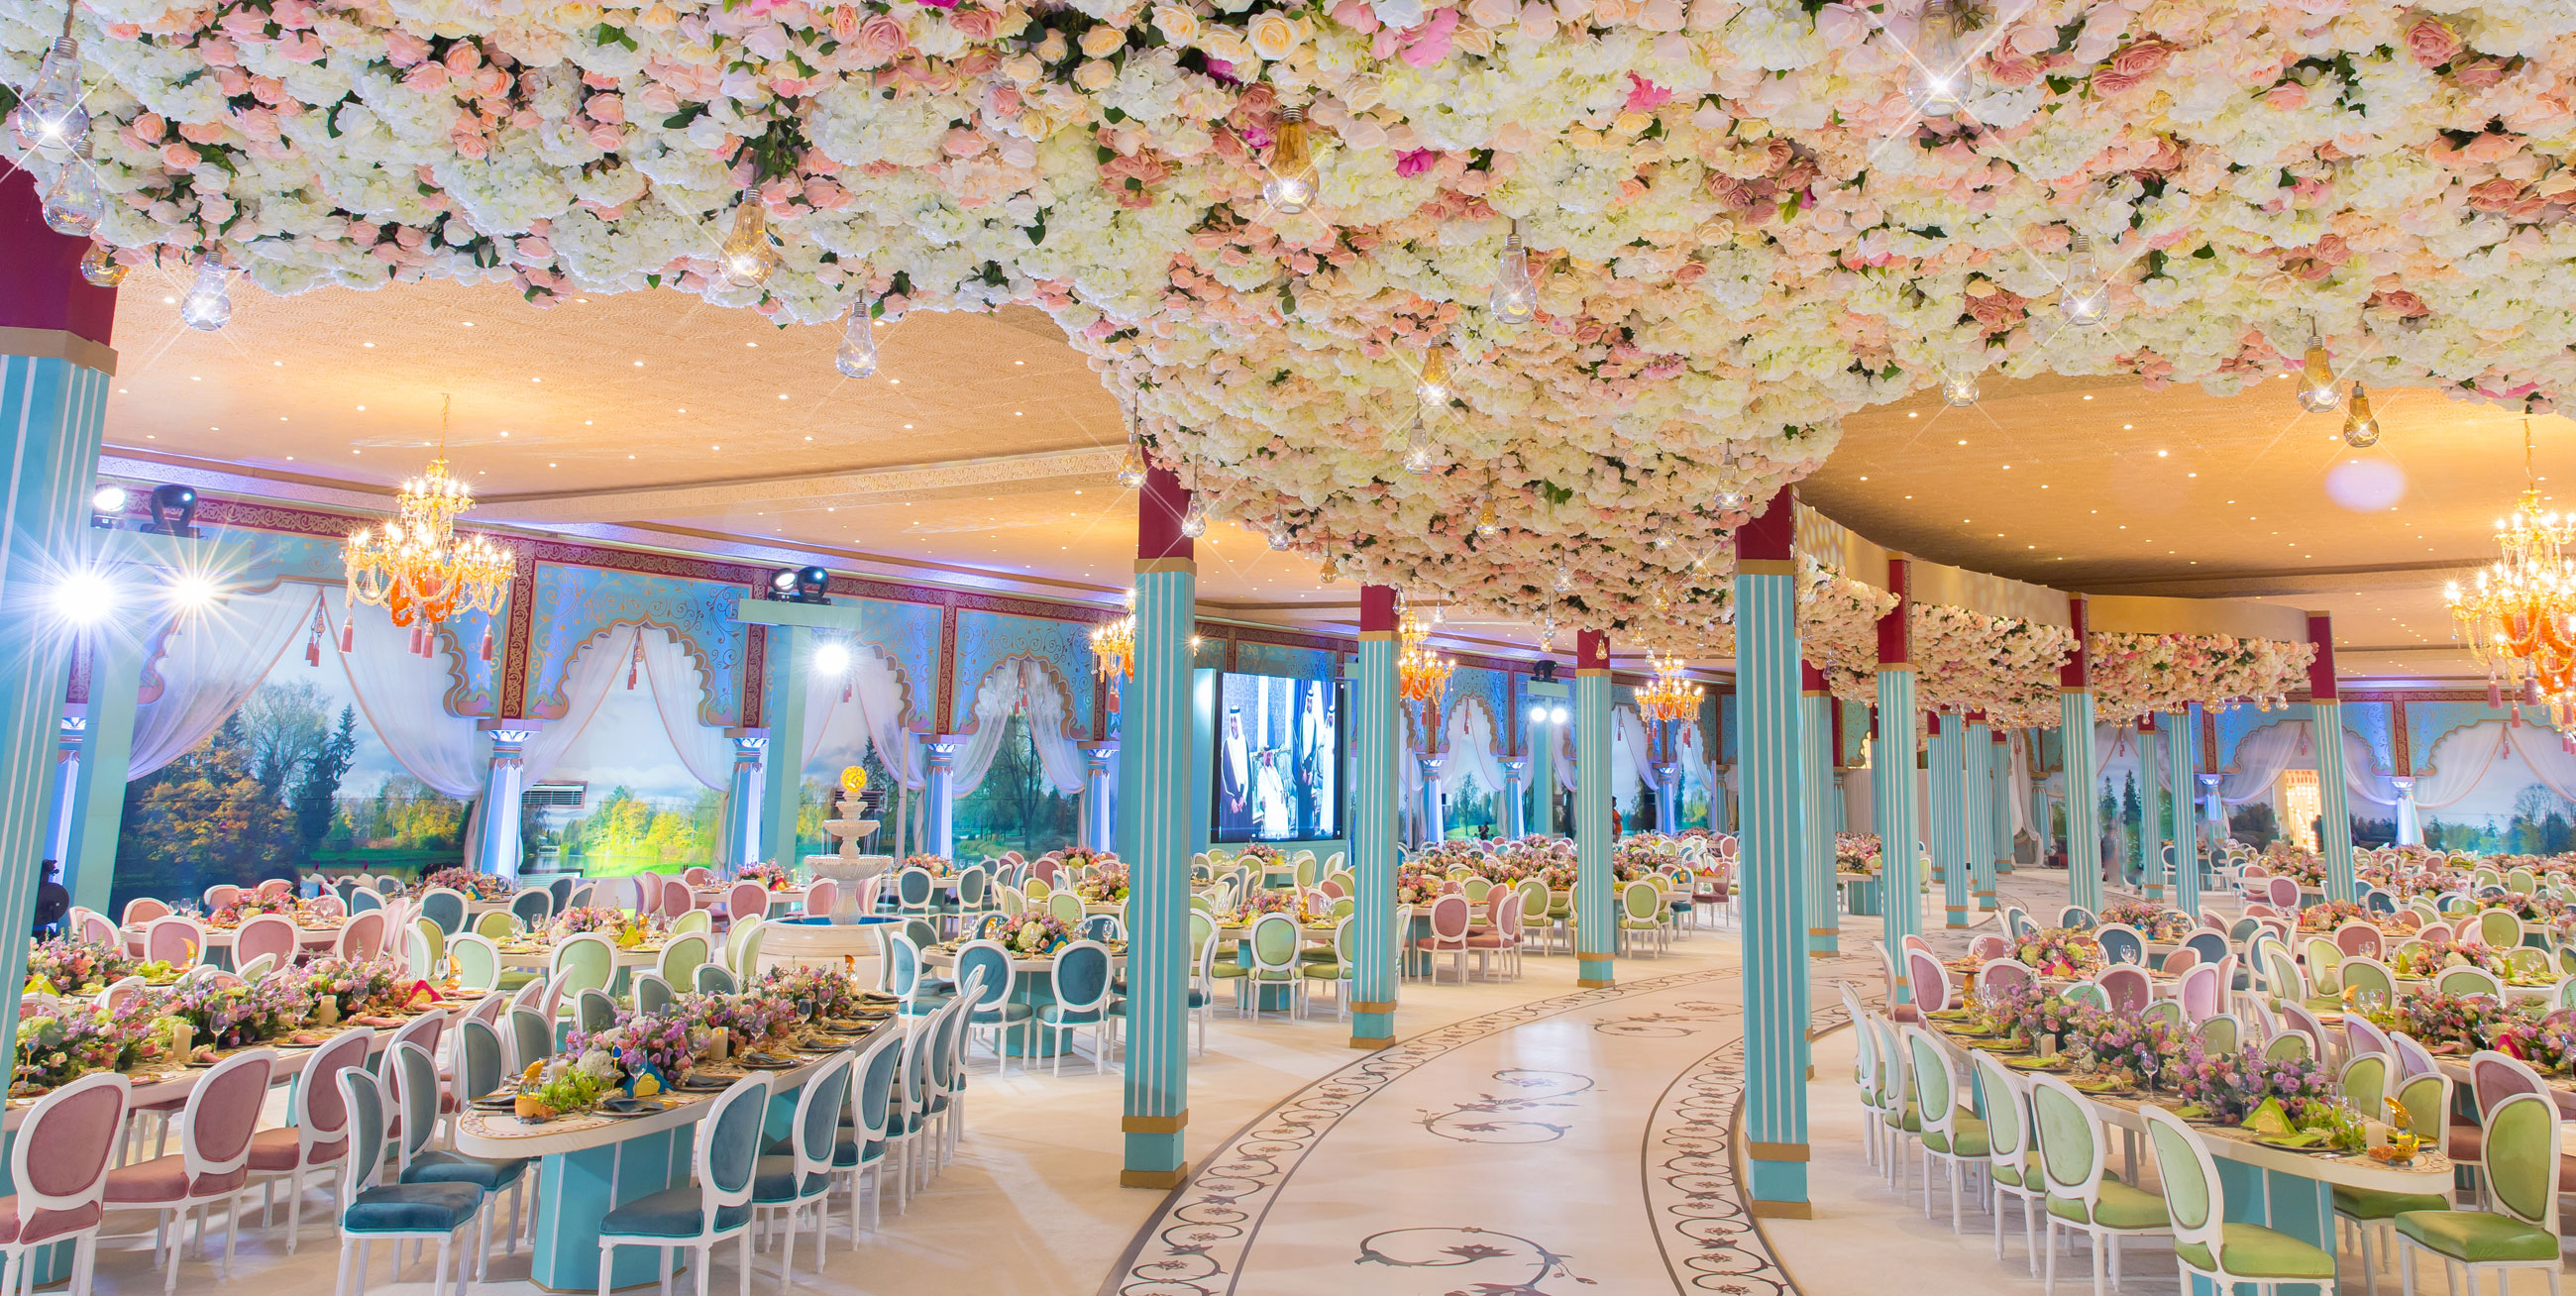 Olivier dolz wedding and party planner is a full service company previous junglespirit Image collections